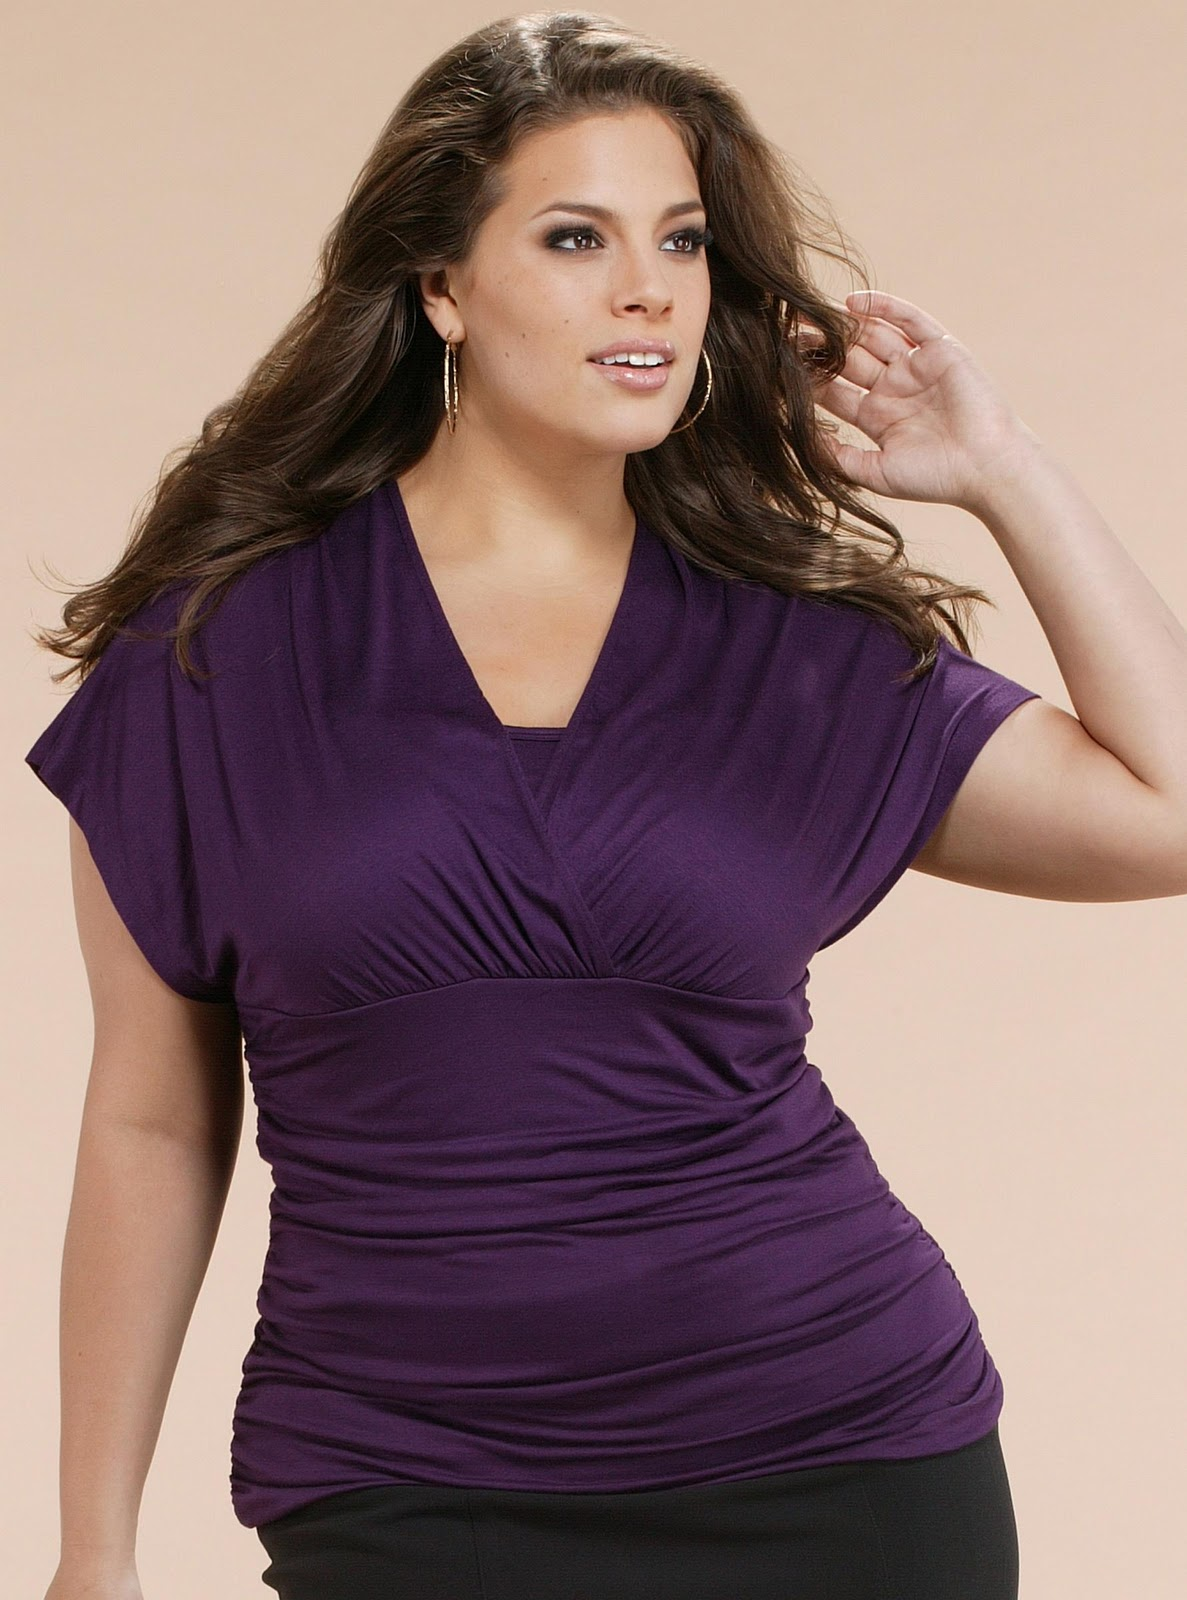 Plus Size Models, Plus Size Models Bio, Plus Size Swimwear